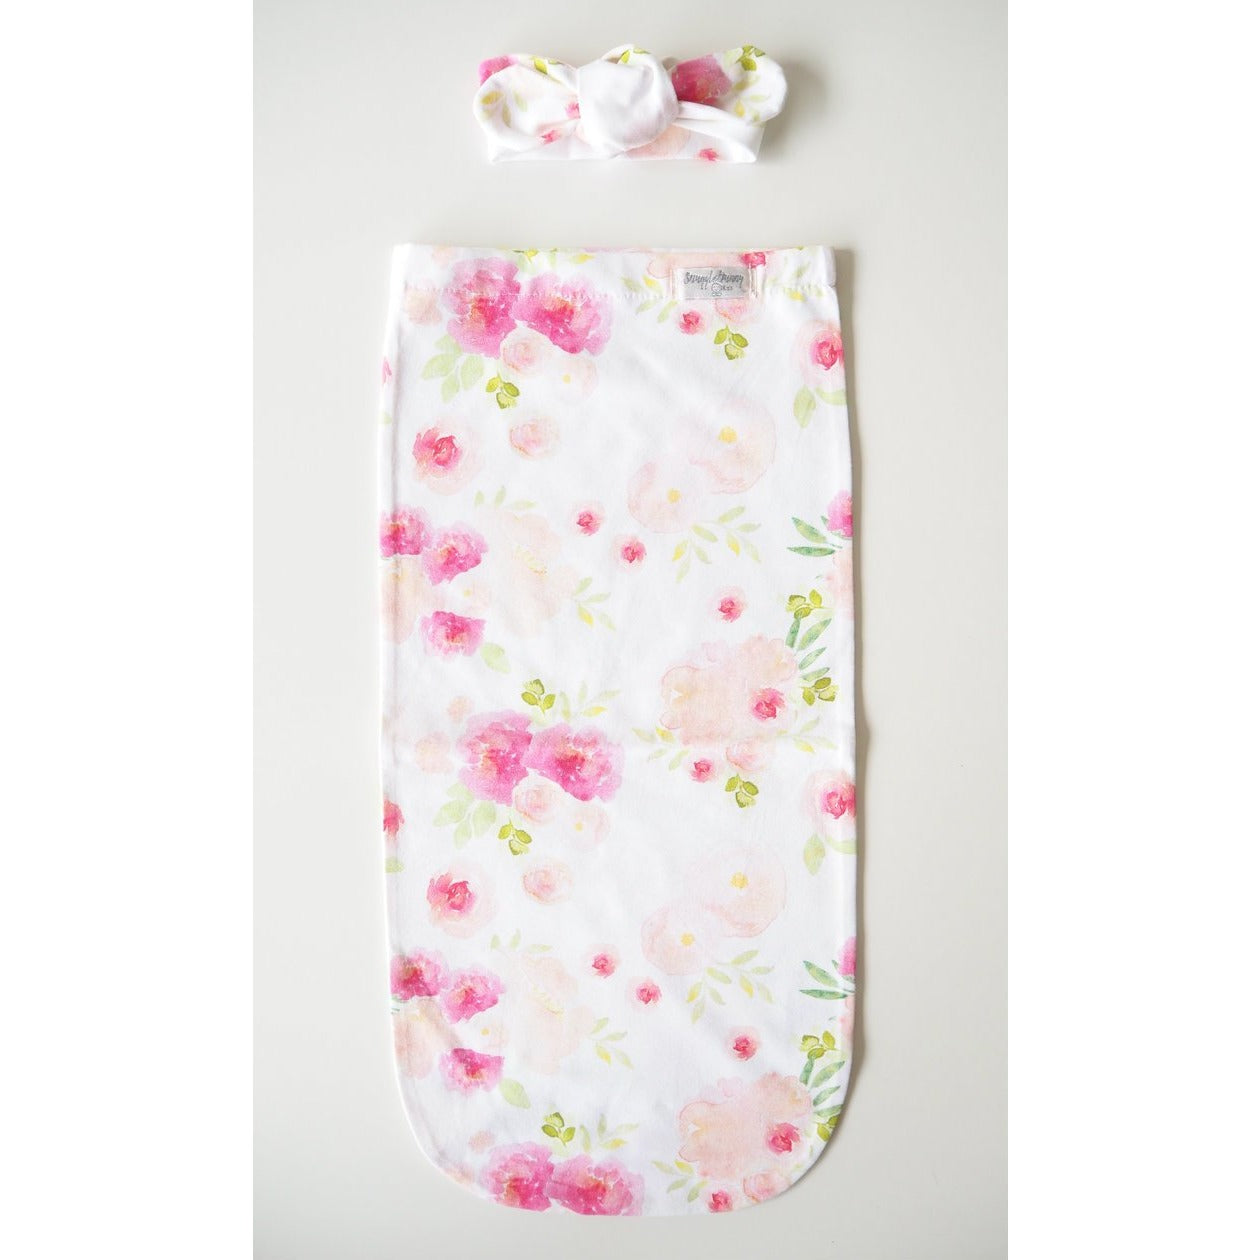 Hunny Blossom I Snuggle Swaddle with matching Topknot